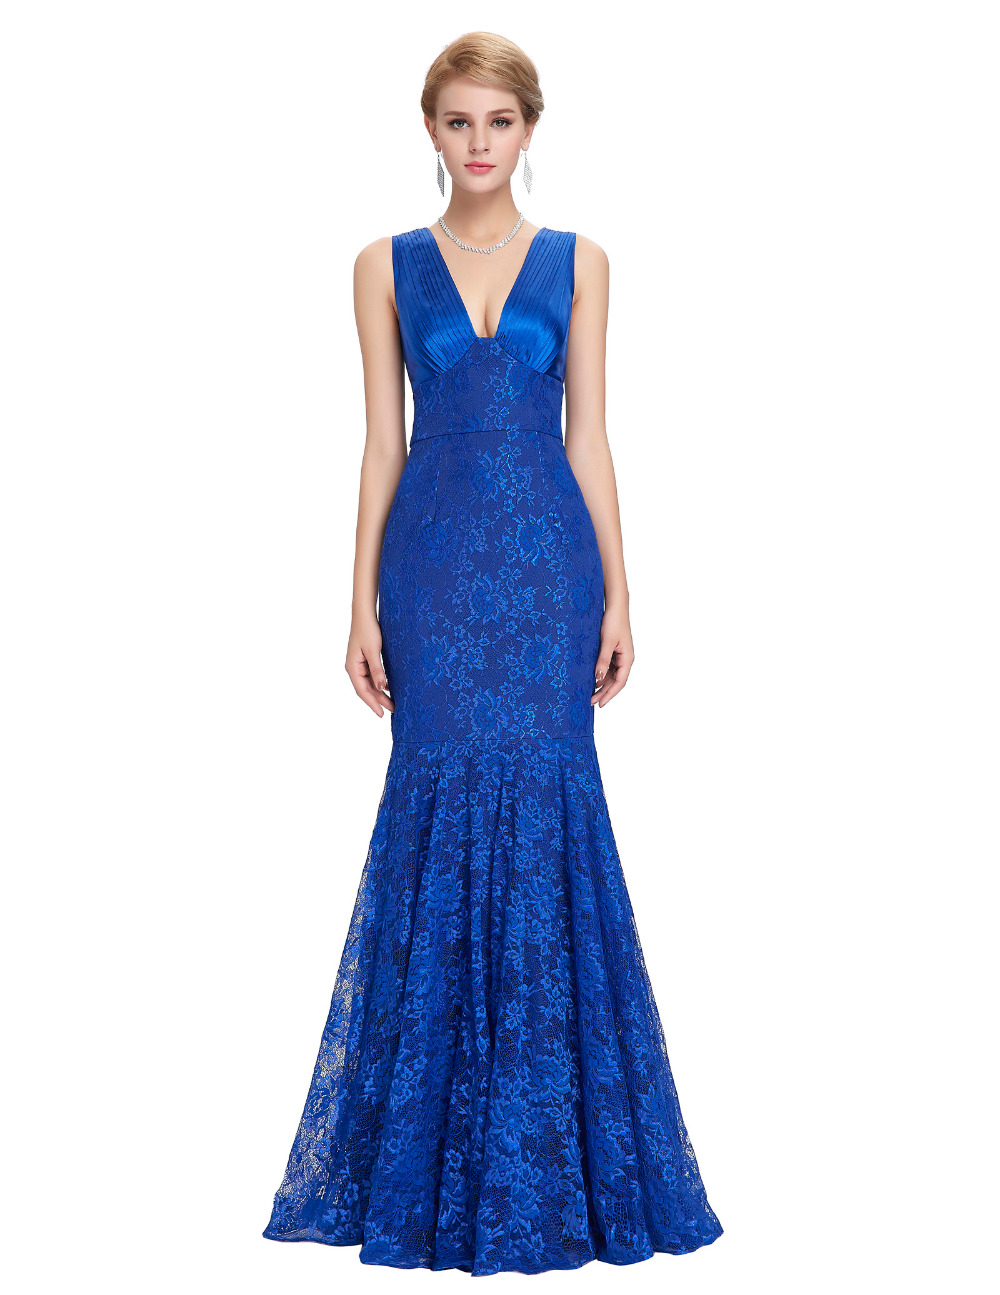 Prom dress new arrival 2016 mermaid pageant dress emerald green - Aliexpress Com Buy New Arrival Women Formal Sexy Long Mermaid Evening Dresses 2017 Gece Elbisesi Lace Royal Blue Black Emerald Green Evening Gowns From